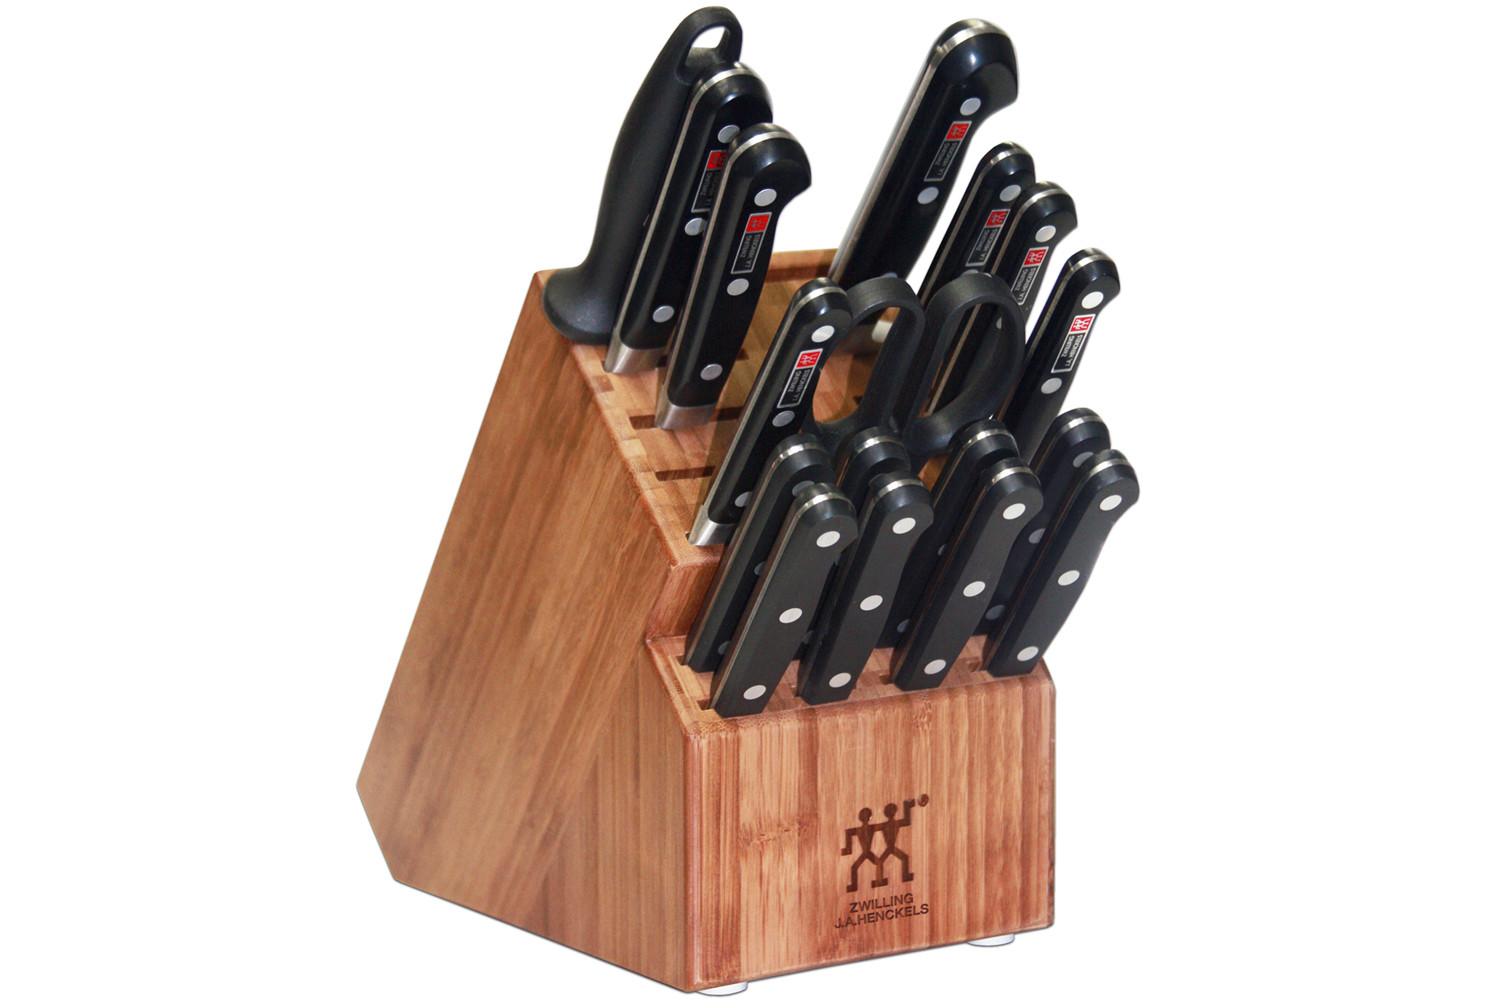 Zwilling J.A. Henckels Pro S 18 Piece Knife Block Set